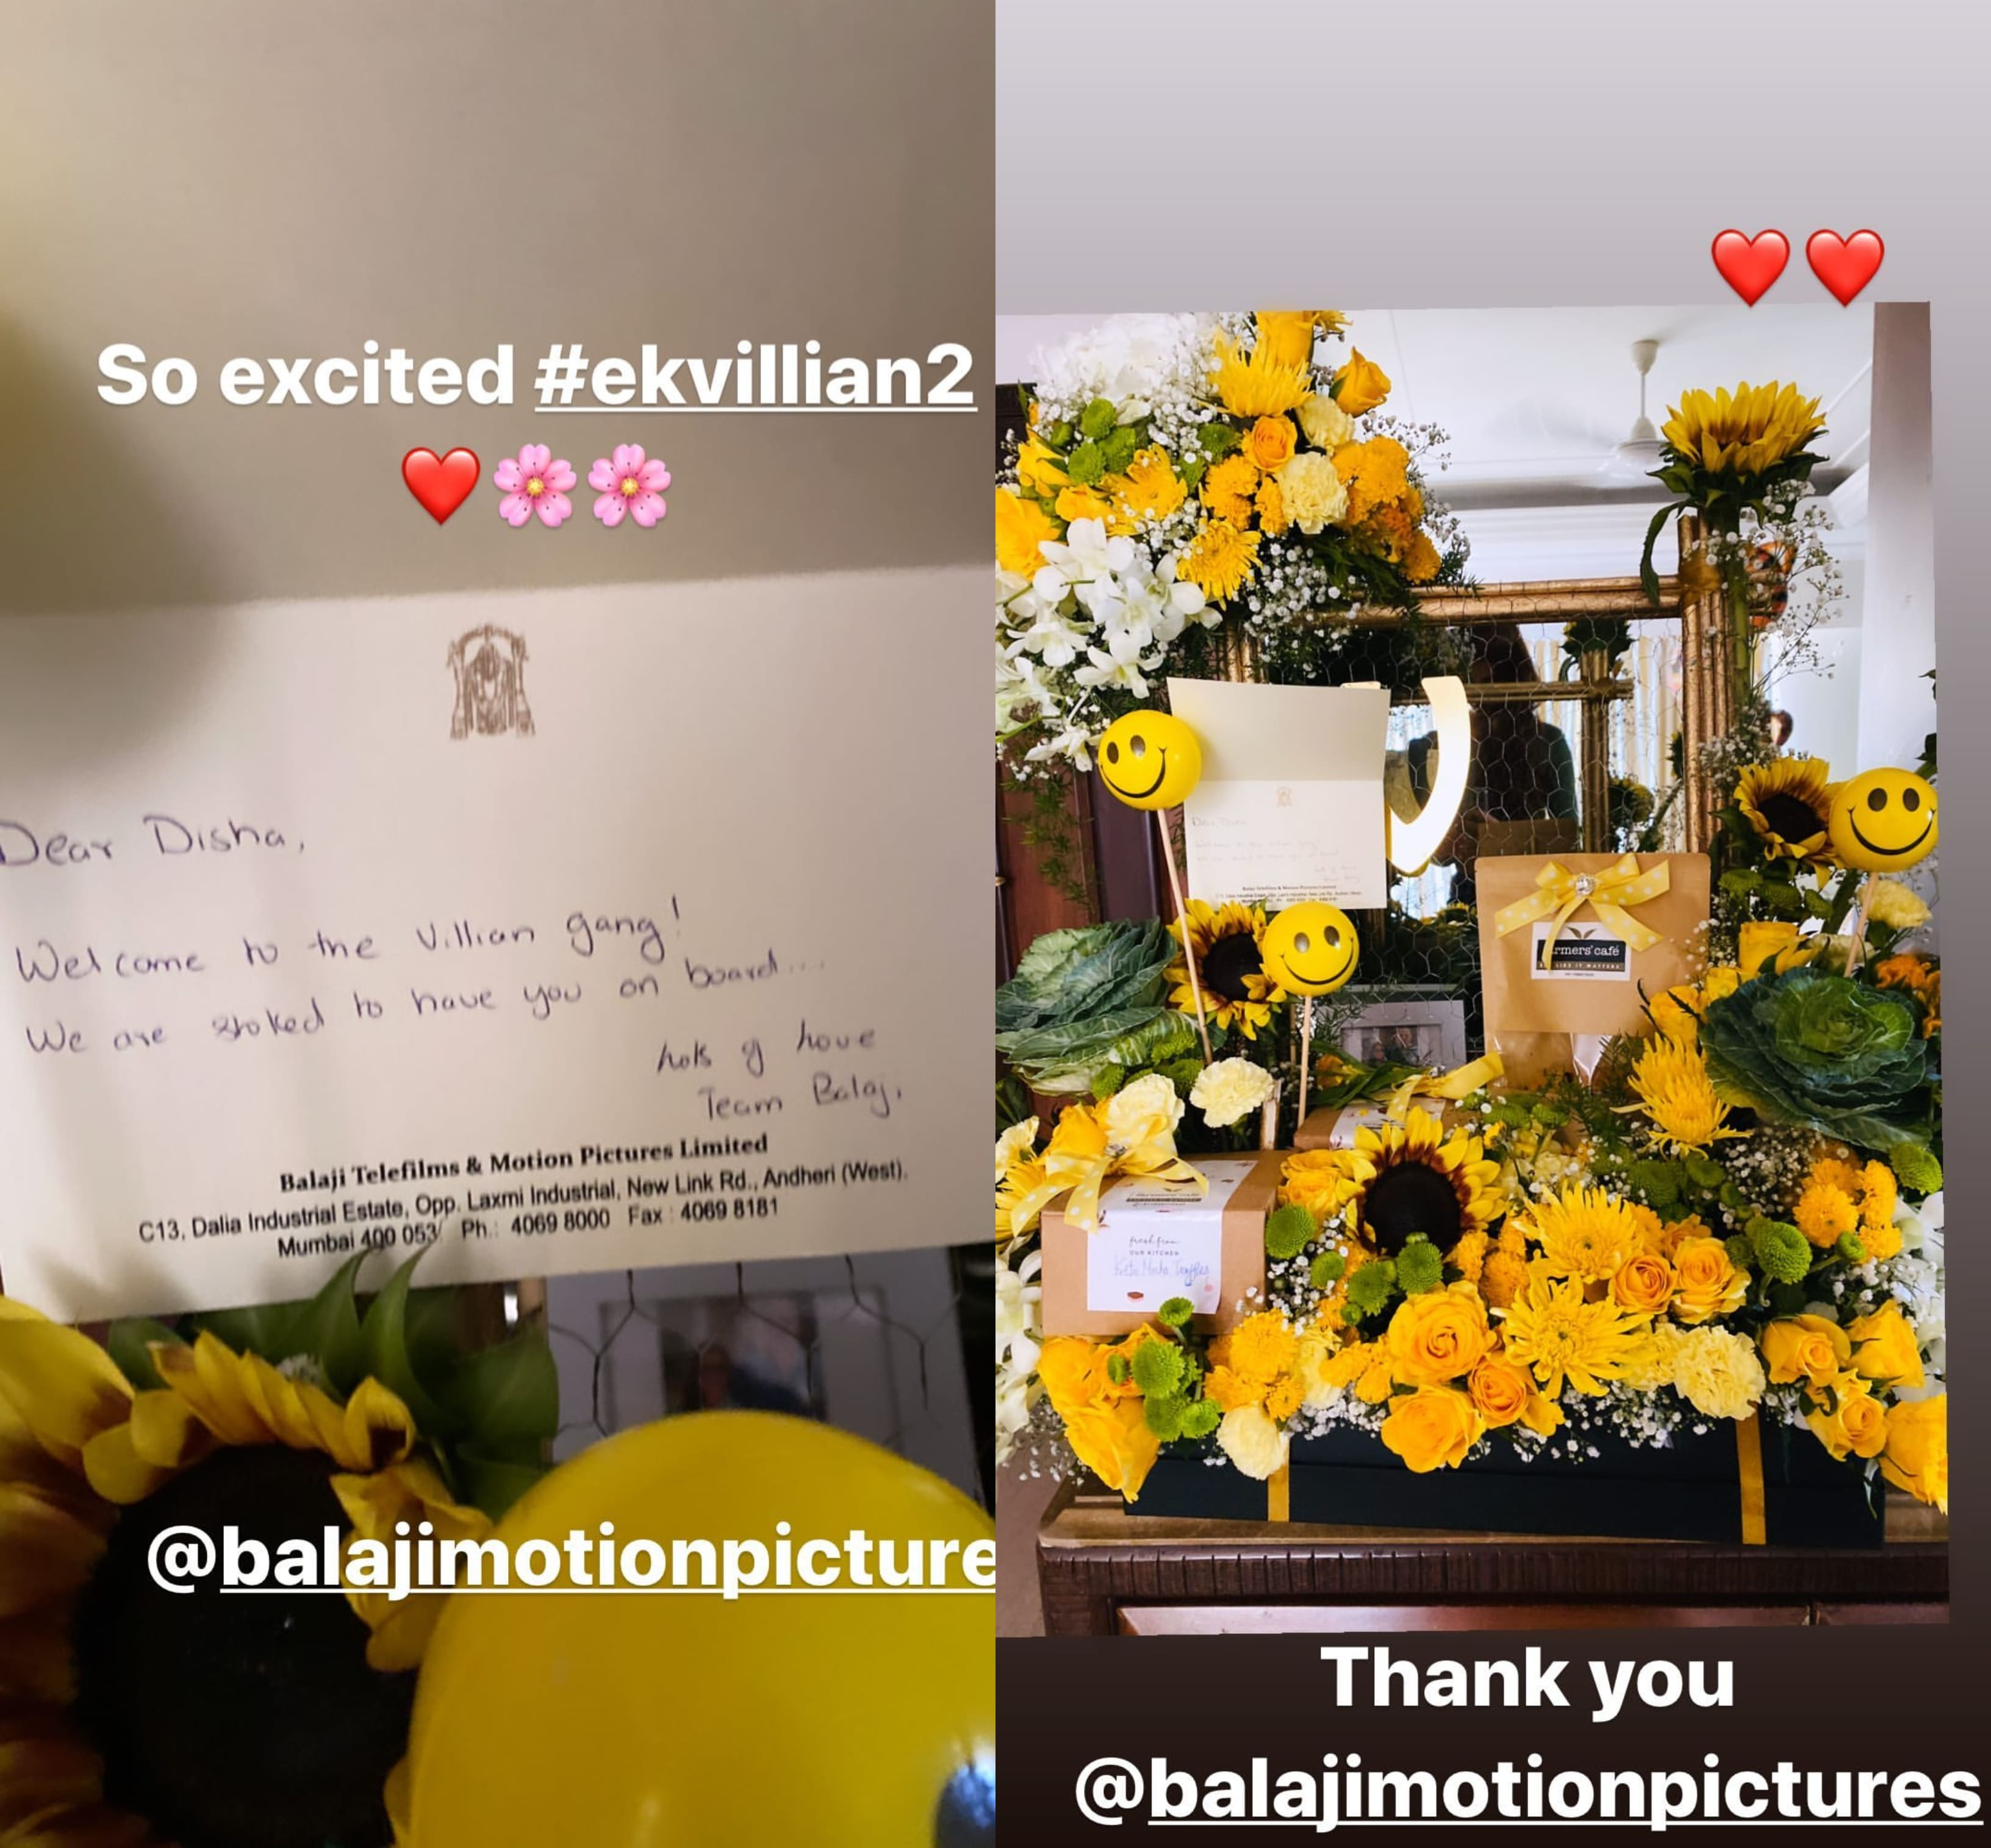 Ek Villain 2: A Super Excited Disha Patani Shares Pictures Of Her Warm Welcome To The 'Villain Gang'